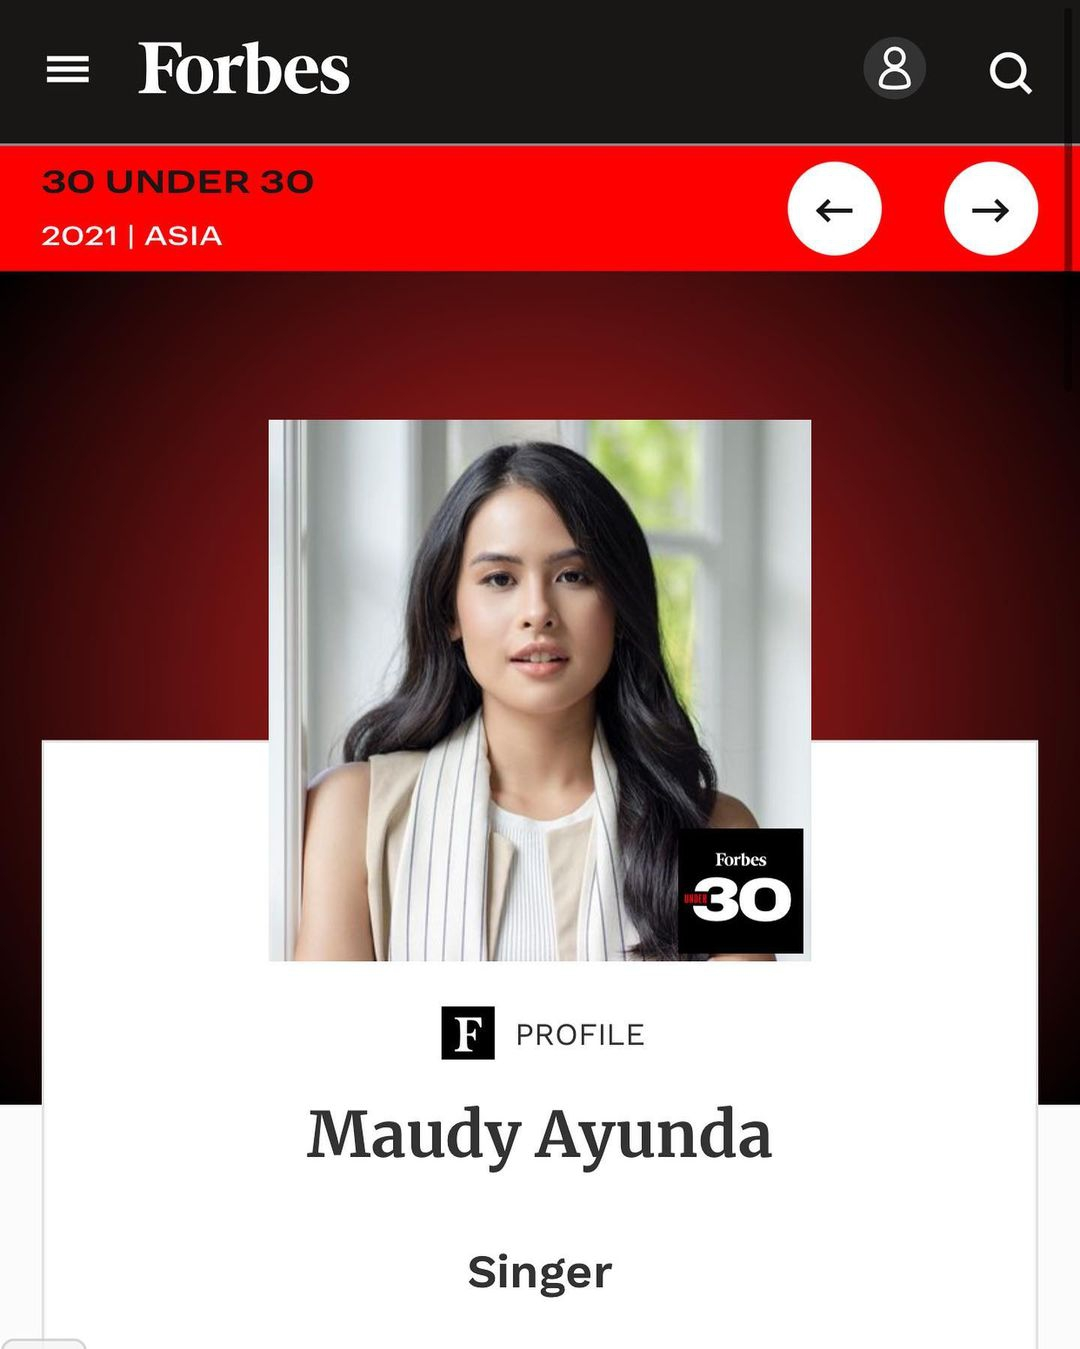 Foto: Courtesy of Instagram @maudyayunda